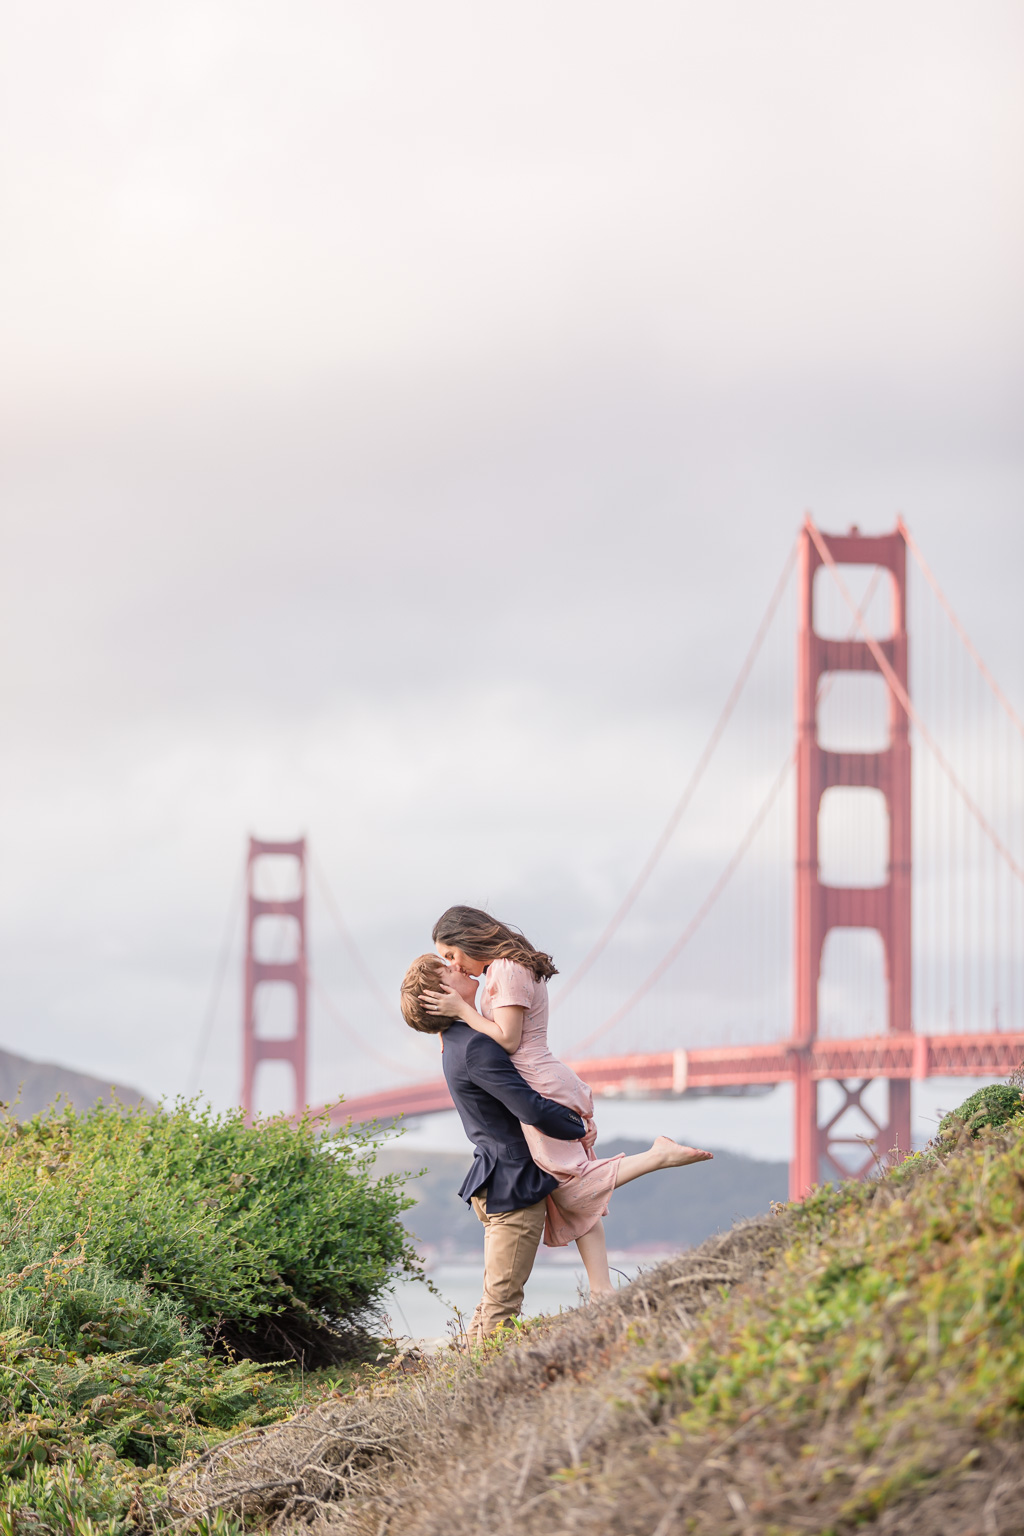 ultra romantic engagement photo by the Golden Gate Bridge